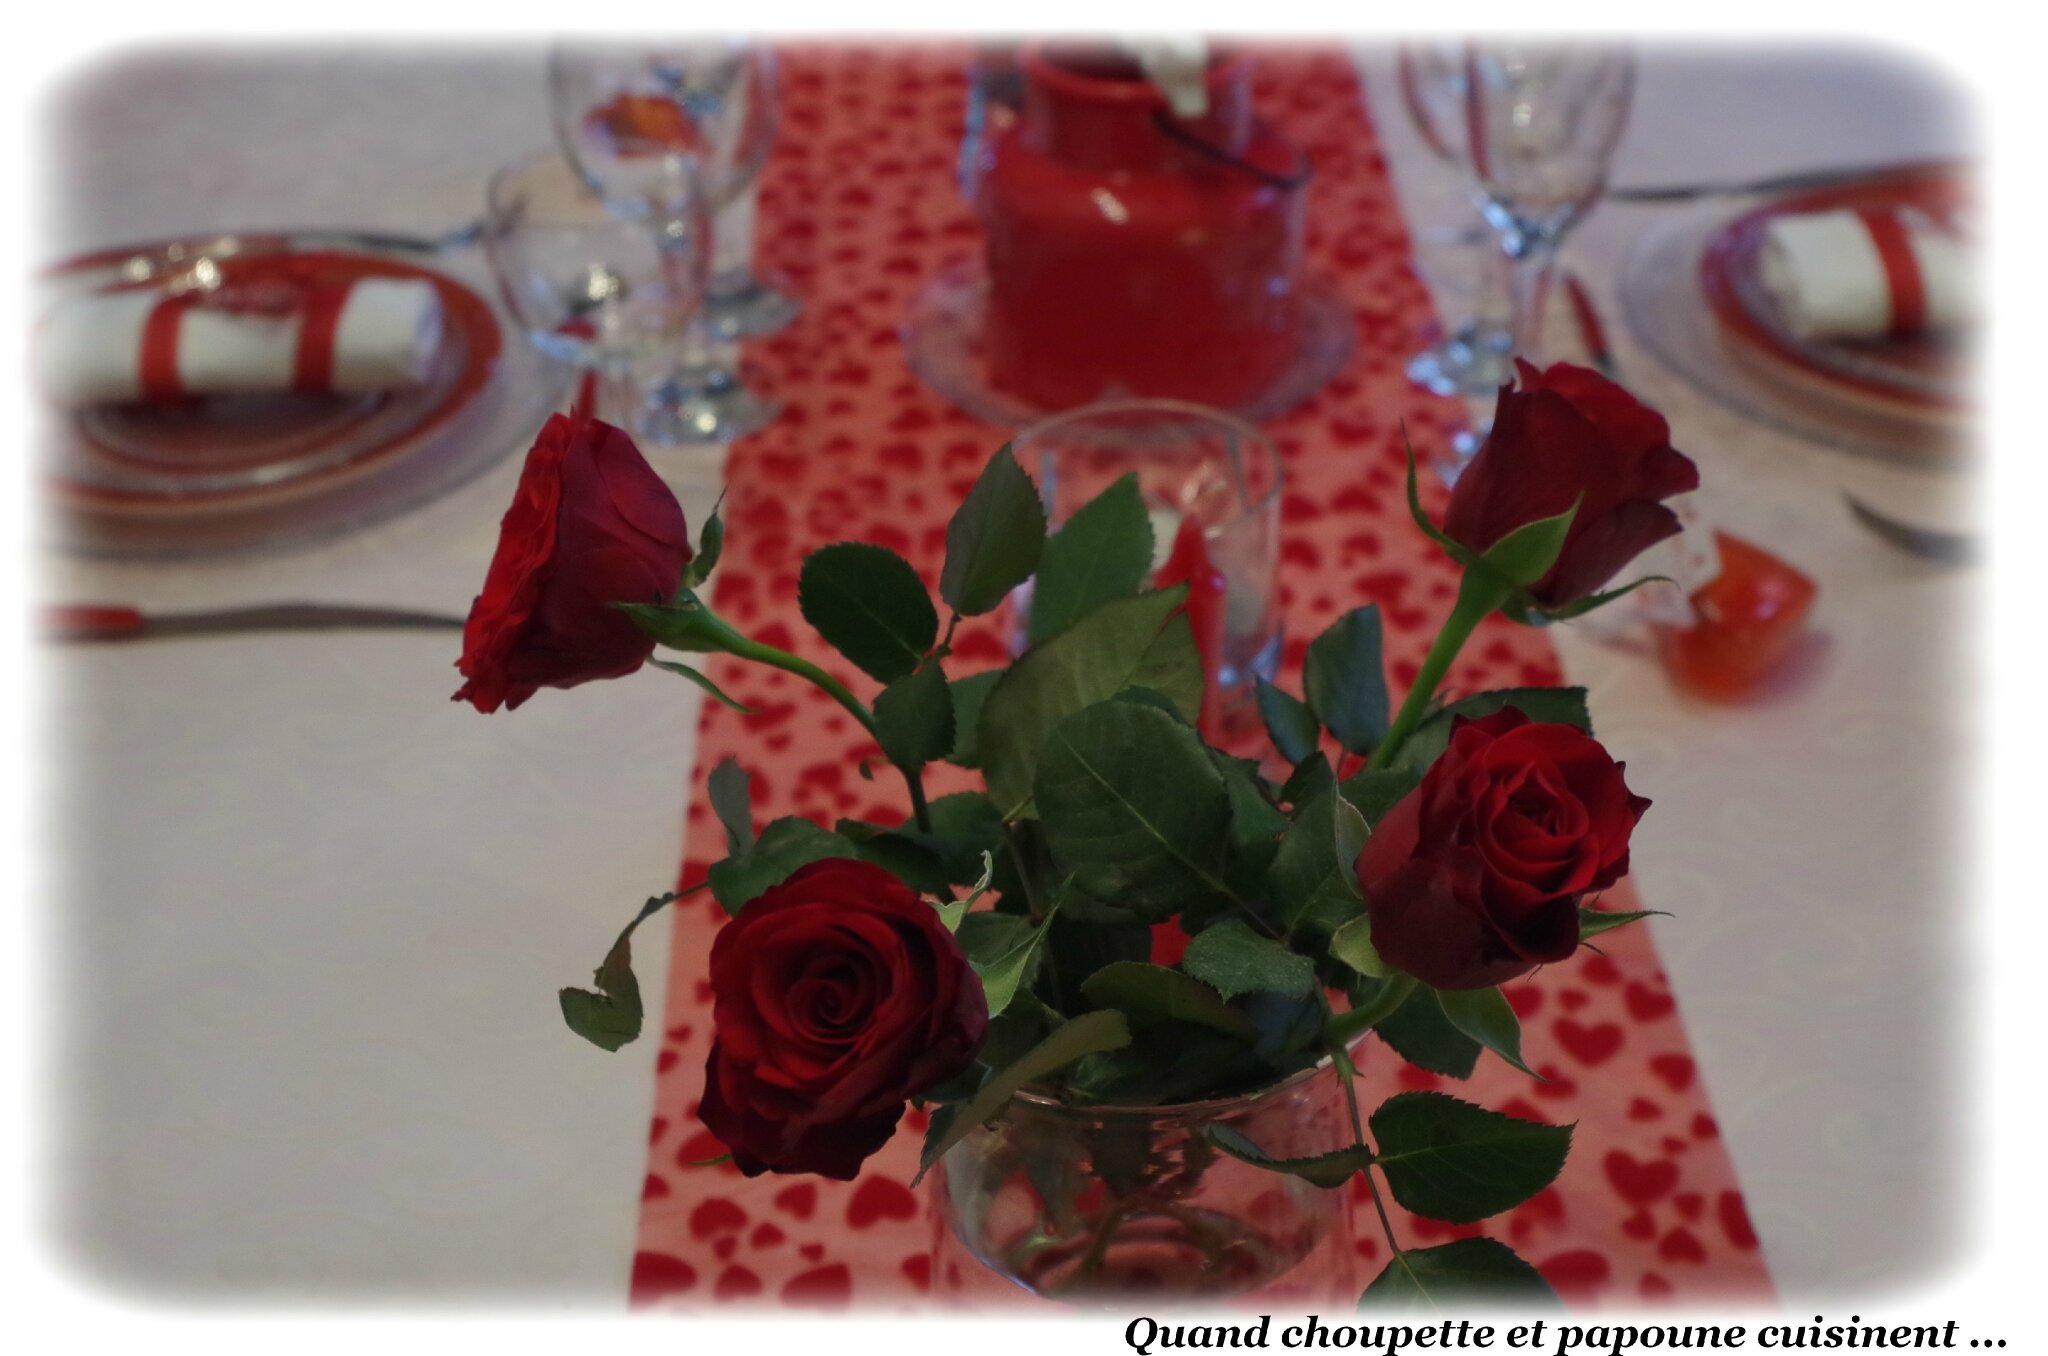 MA TABLE SAINT-VALENTIN 2018